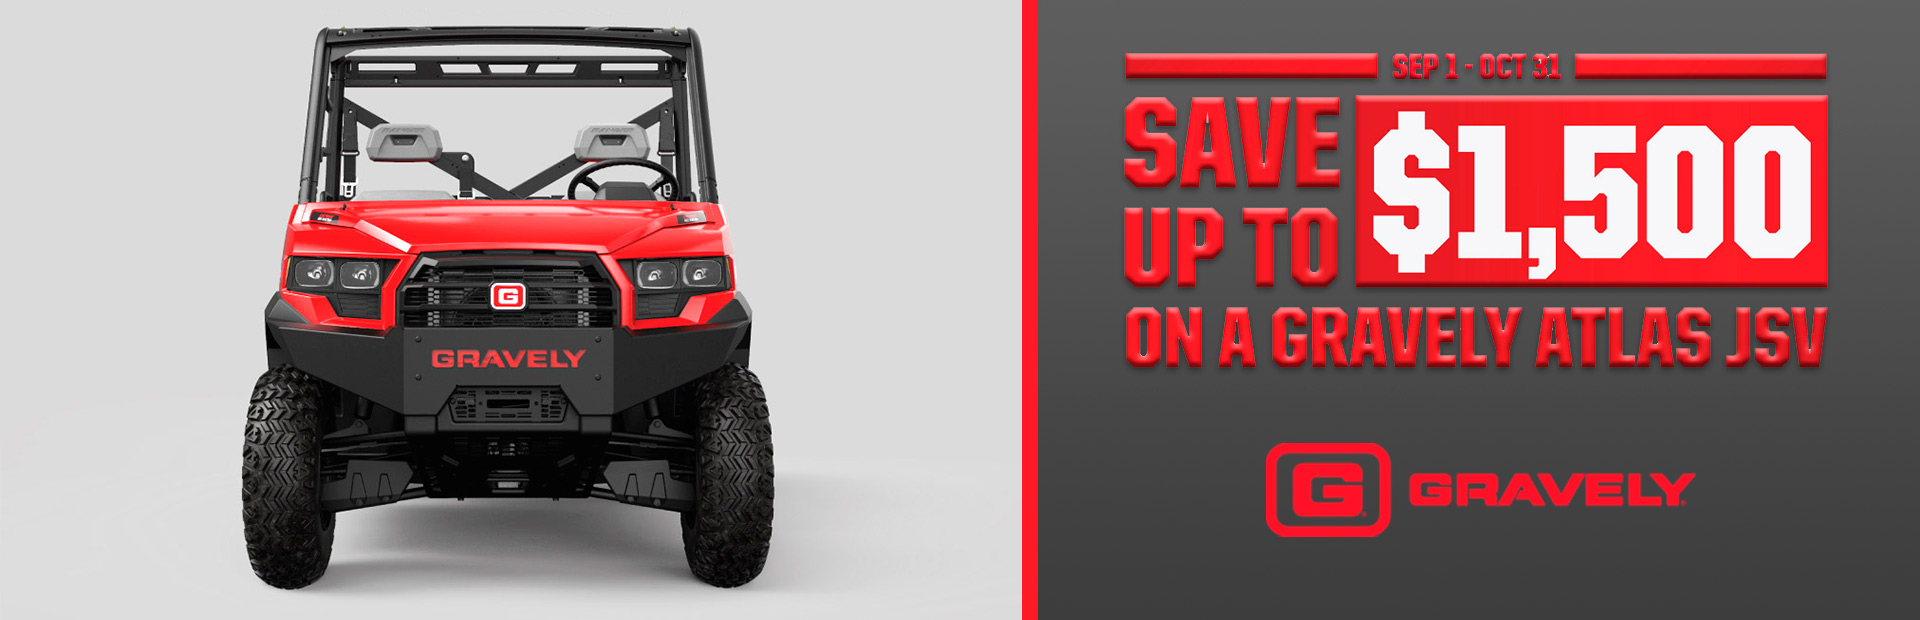 Gravely: Save Up To $1,500 on a Gravely Atlas JSV